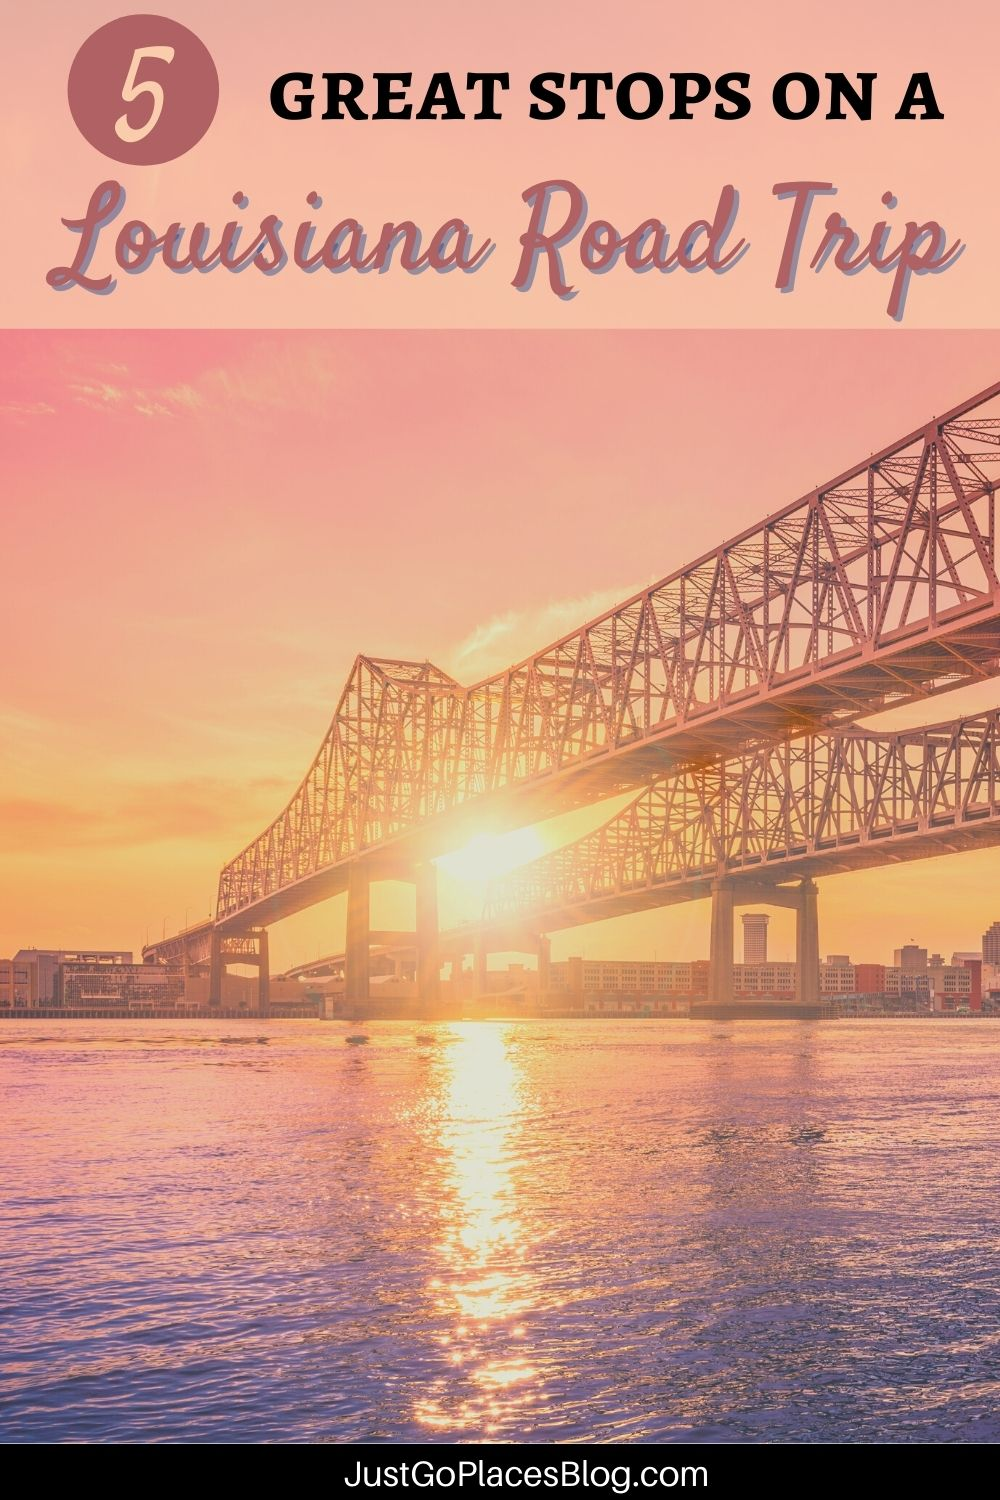 Pinterest image of the Mississippi River at sunset connecting to New Orleans with the text: 5 Great Stops on a Louisiana Road Trip